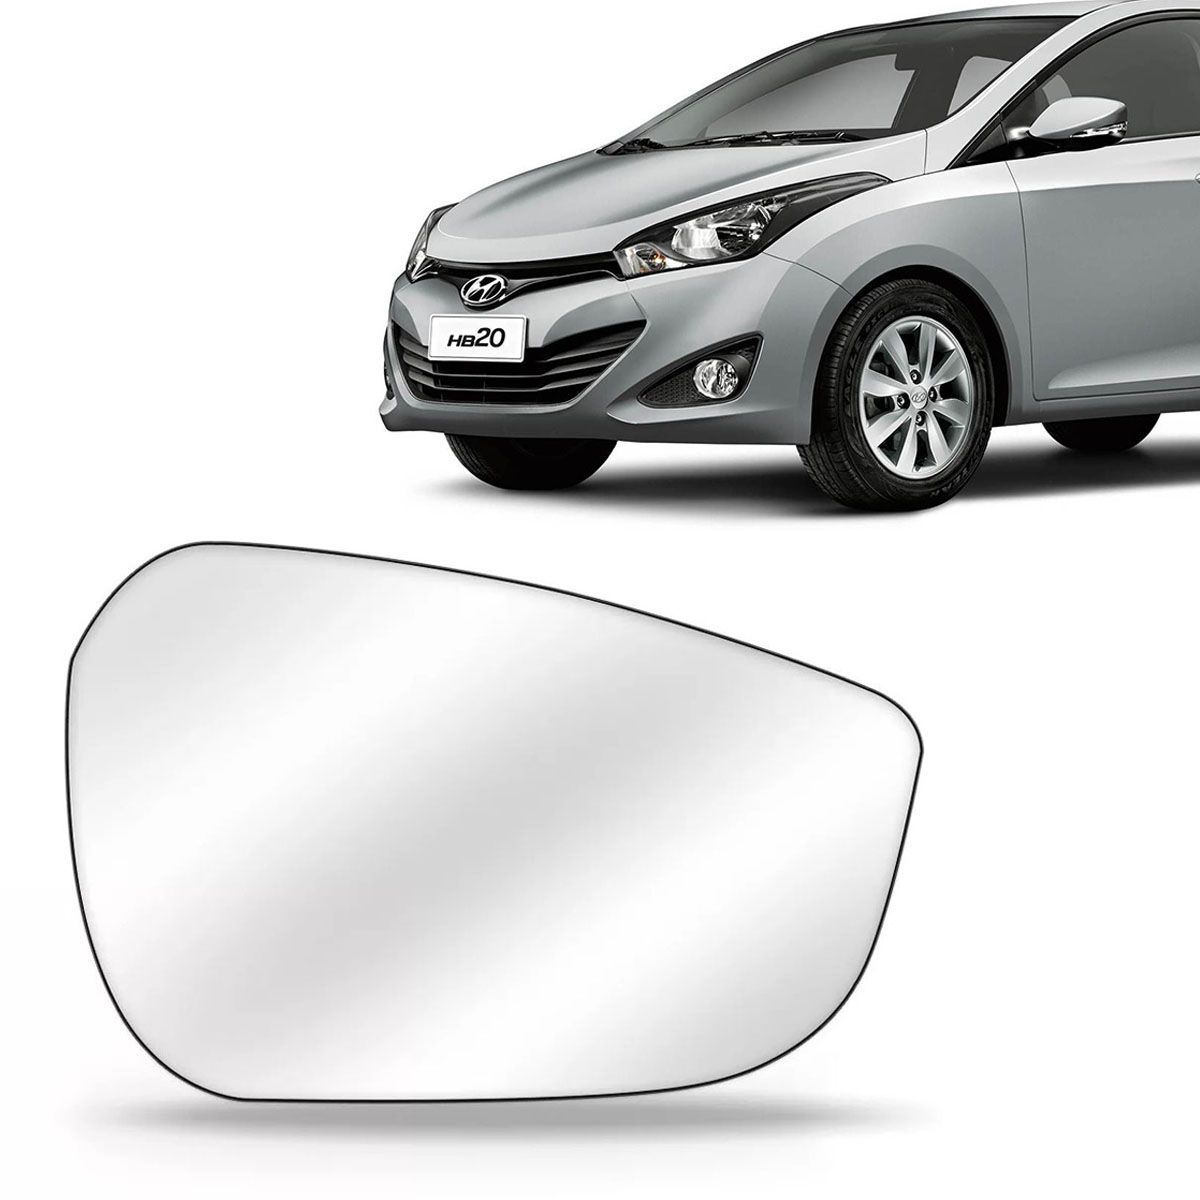 Lente Retrovisor Hb20 Hatch e Sedan 2012 Até 2018 Com Base Lado Esquerdo